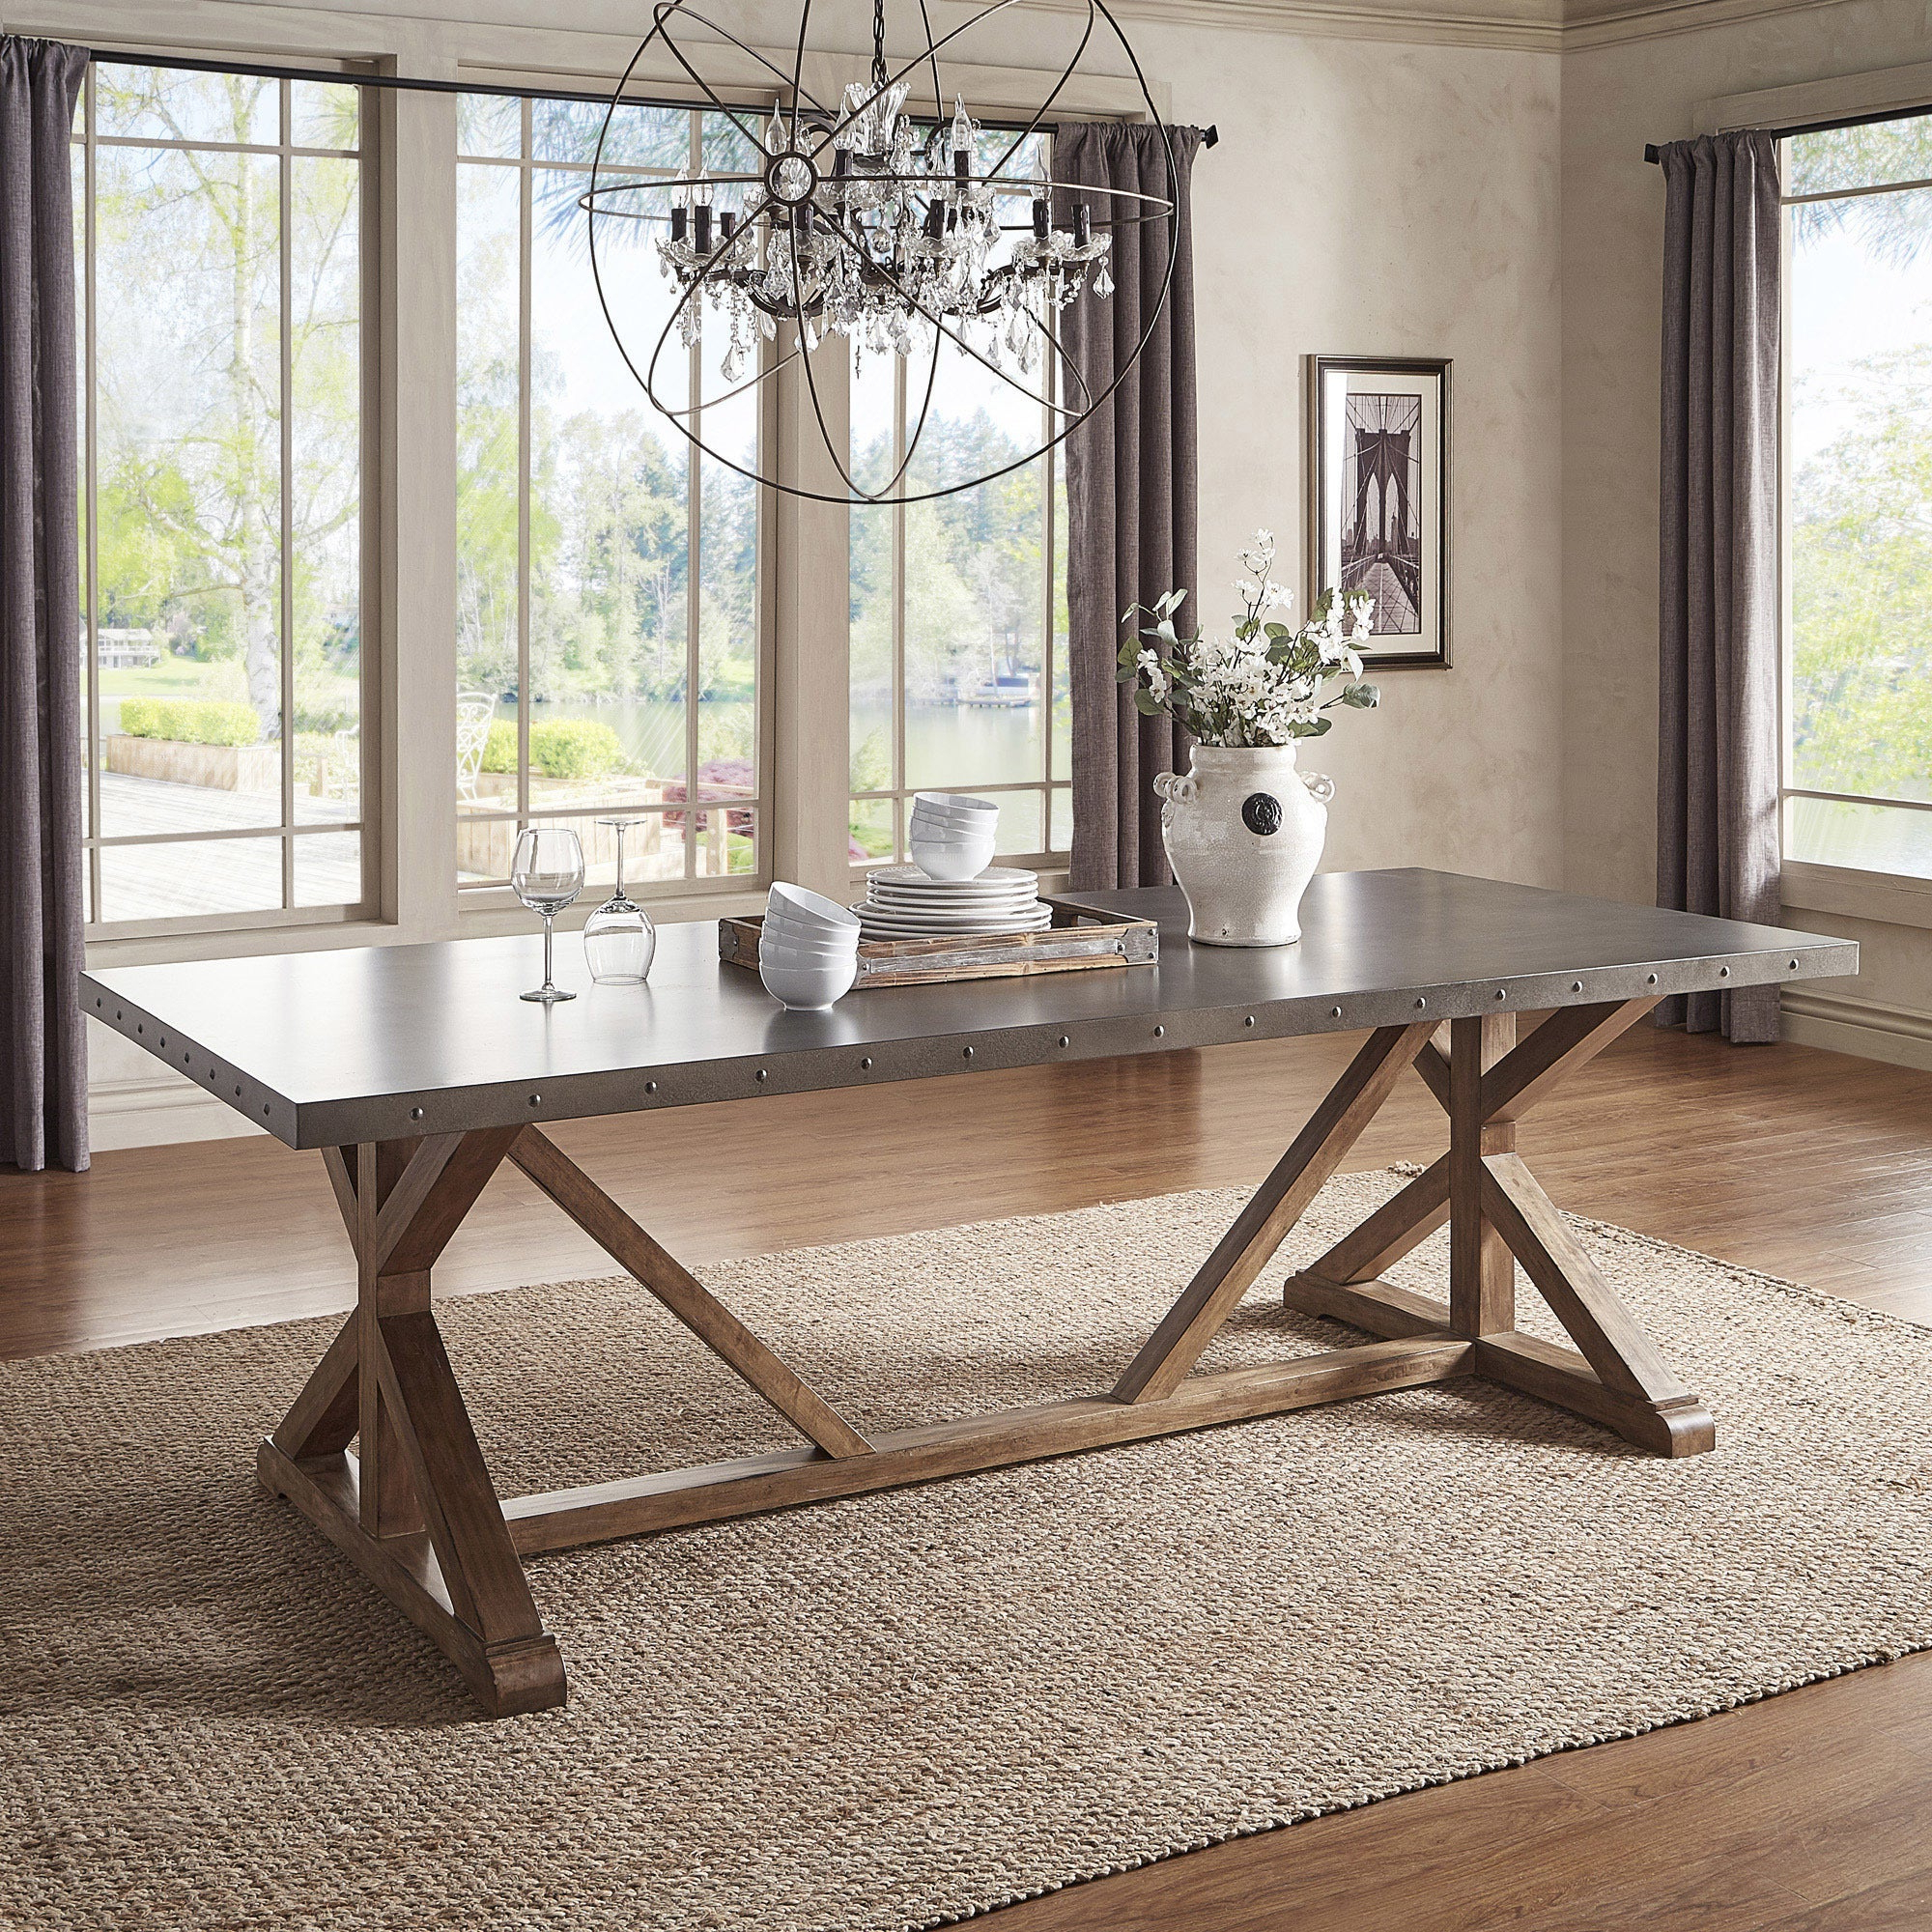 Albee Rectangular Stainless Steel Top Dining Table With Poplar X Base Inspire Q Artisan – Grey Intended For Most Popular Wood Top Dining Tables (View 12 of 30)